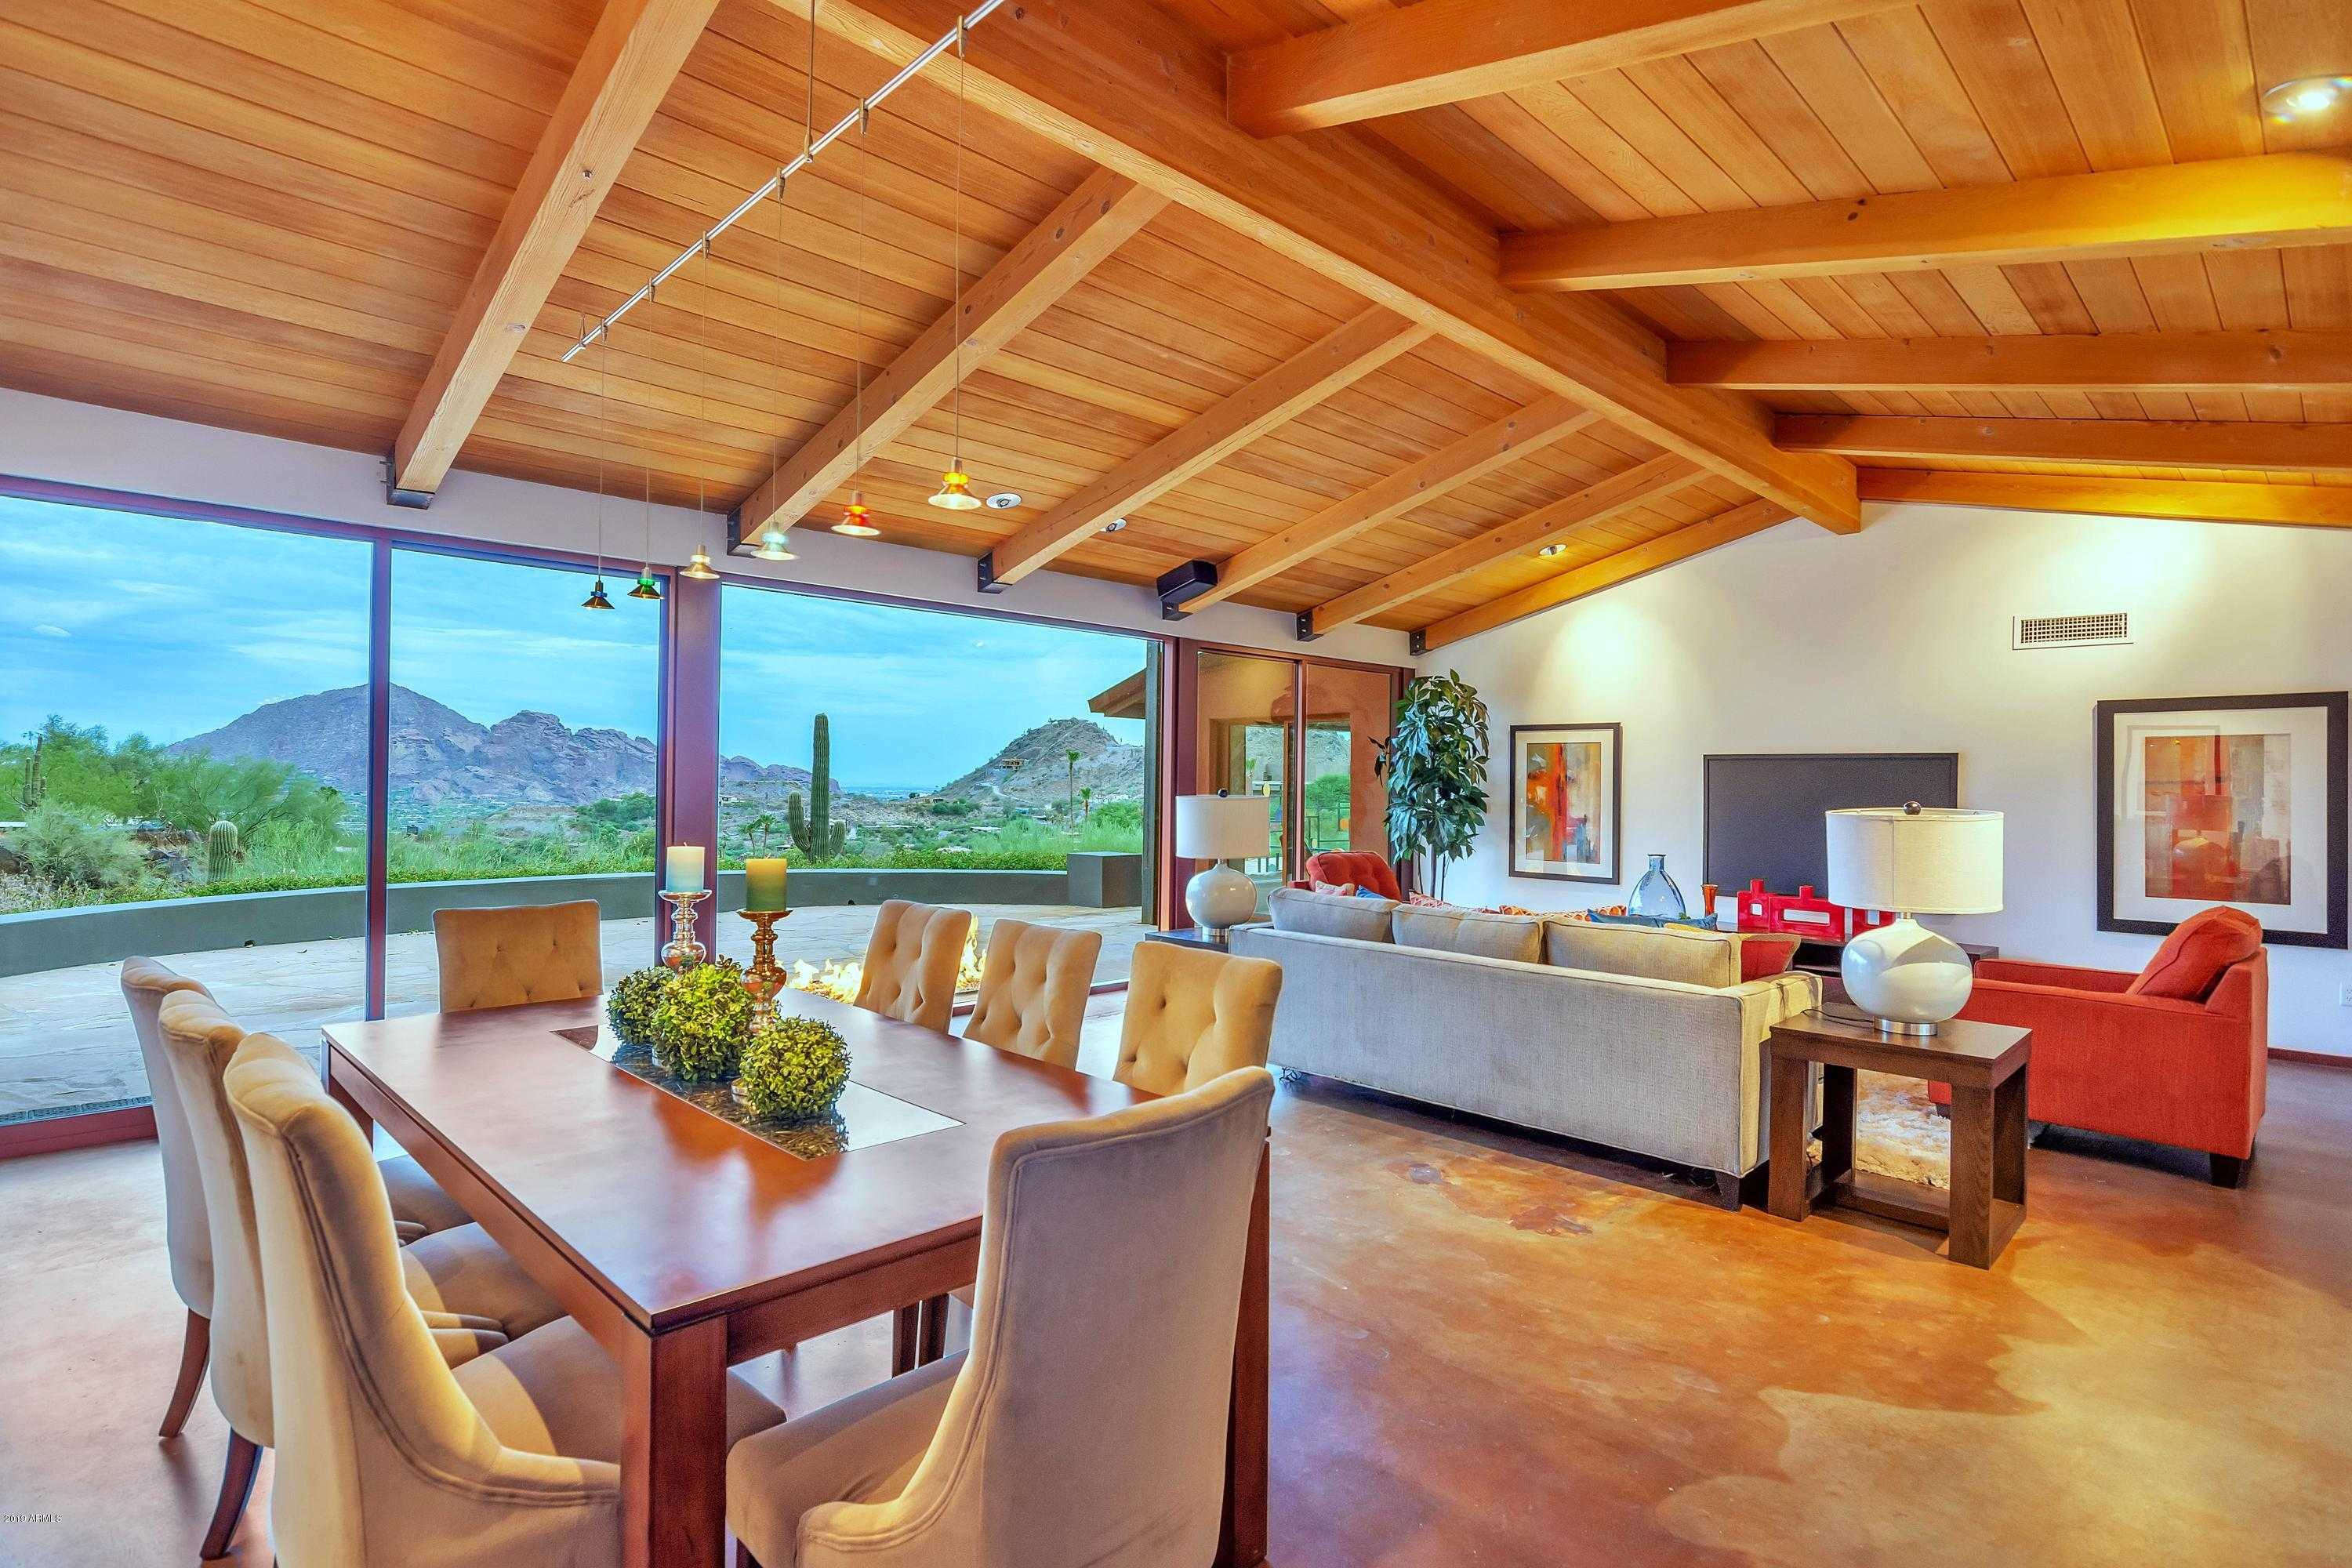 $1,679,000 - 3Br/3Ba - Home for Sale in Clearwater Hills Prvt Roads & Tr A, Paradise Valley